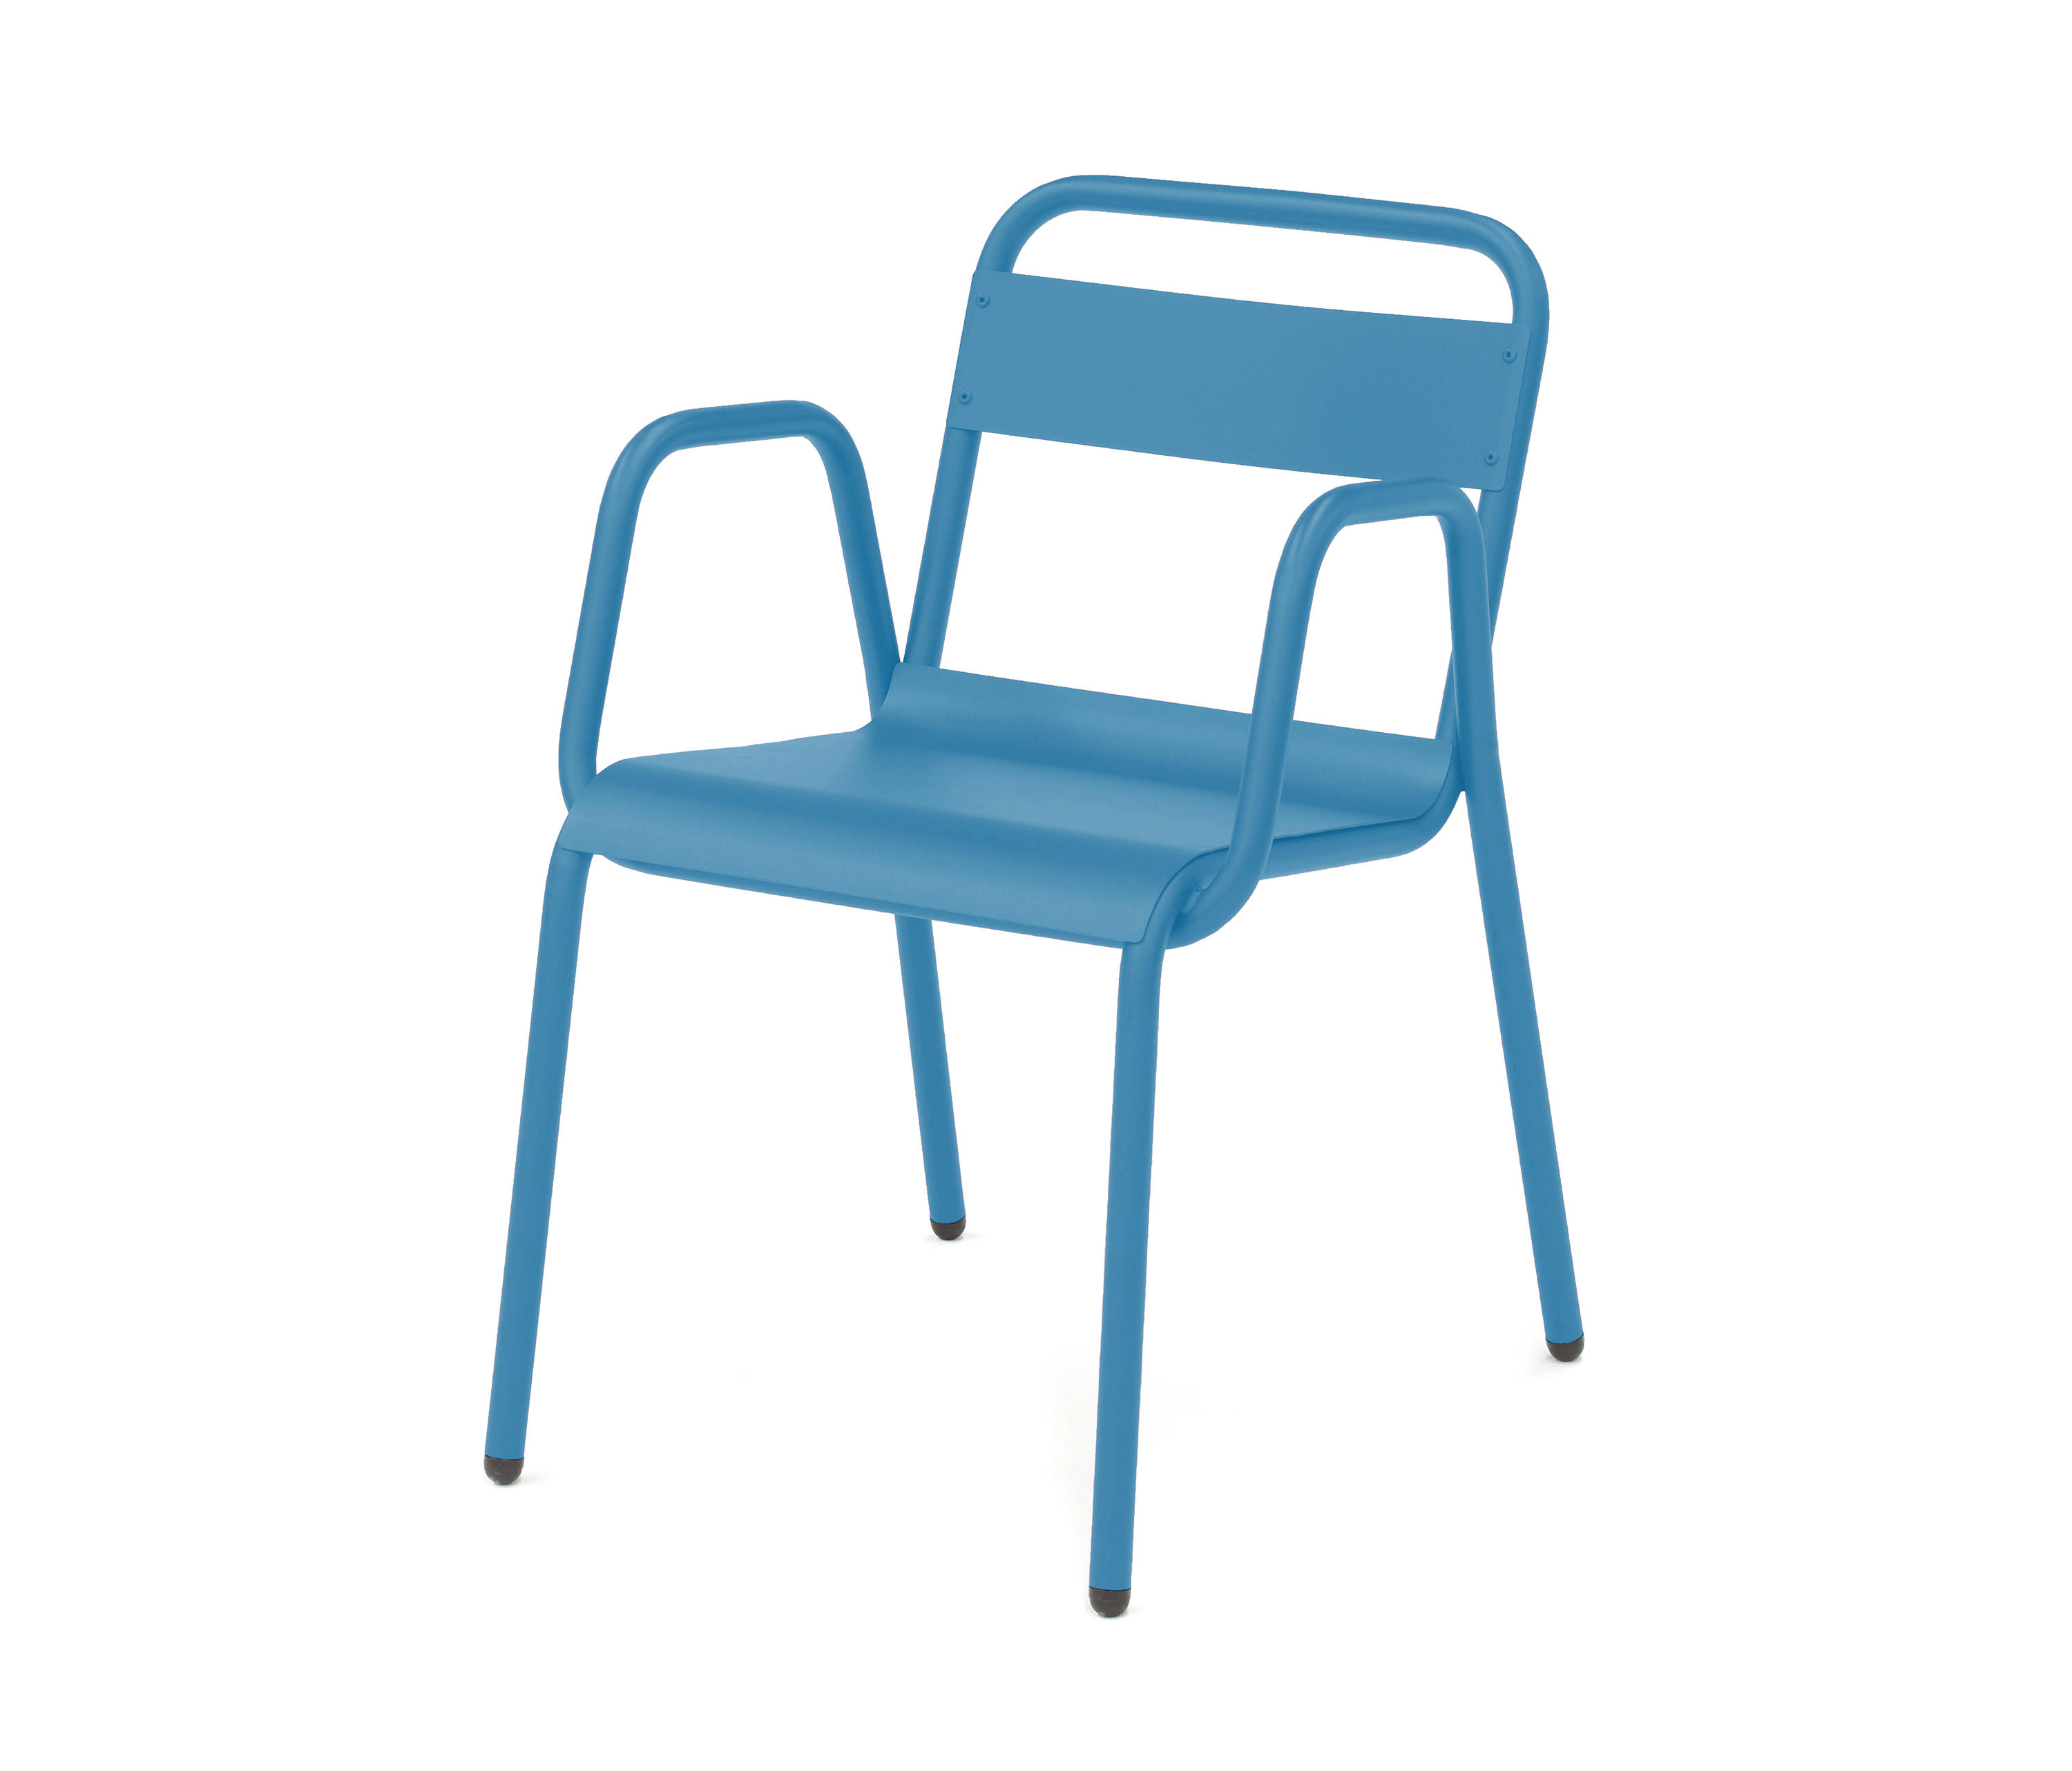 Anglet chaise chaises de cantine de isimar architonic for Mobilier anglet